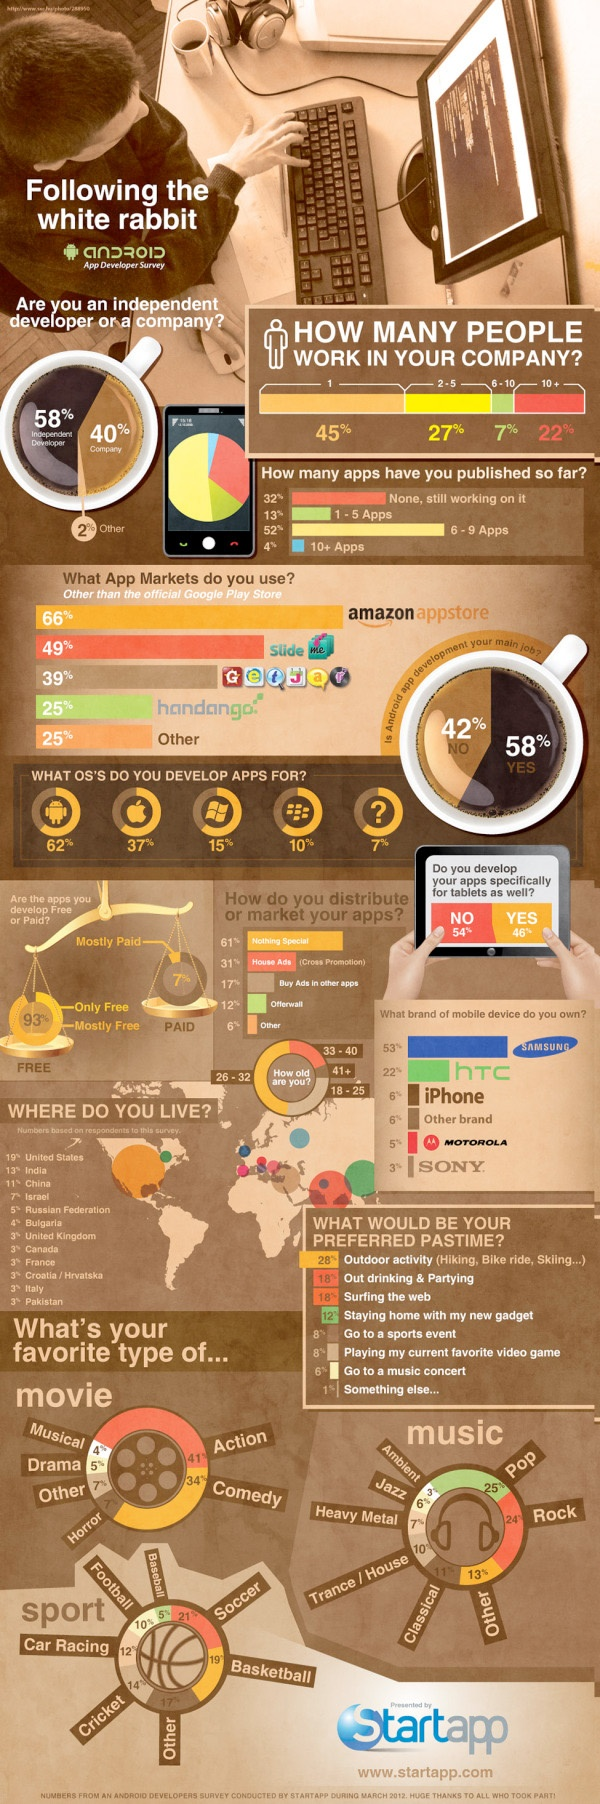 Android App User Infographic